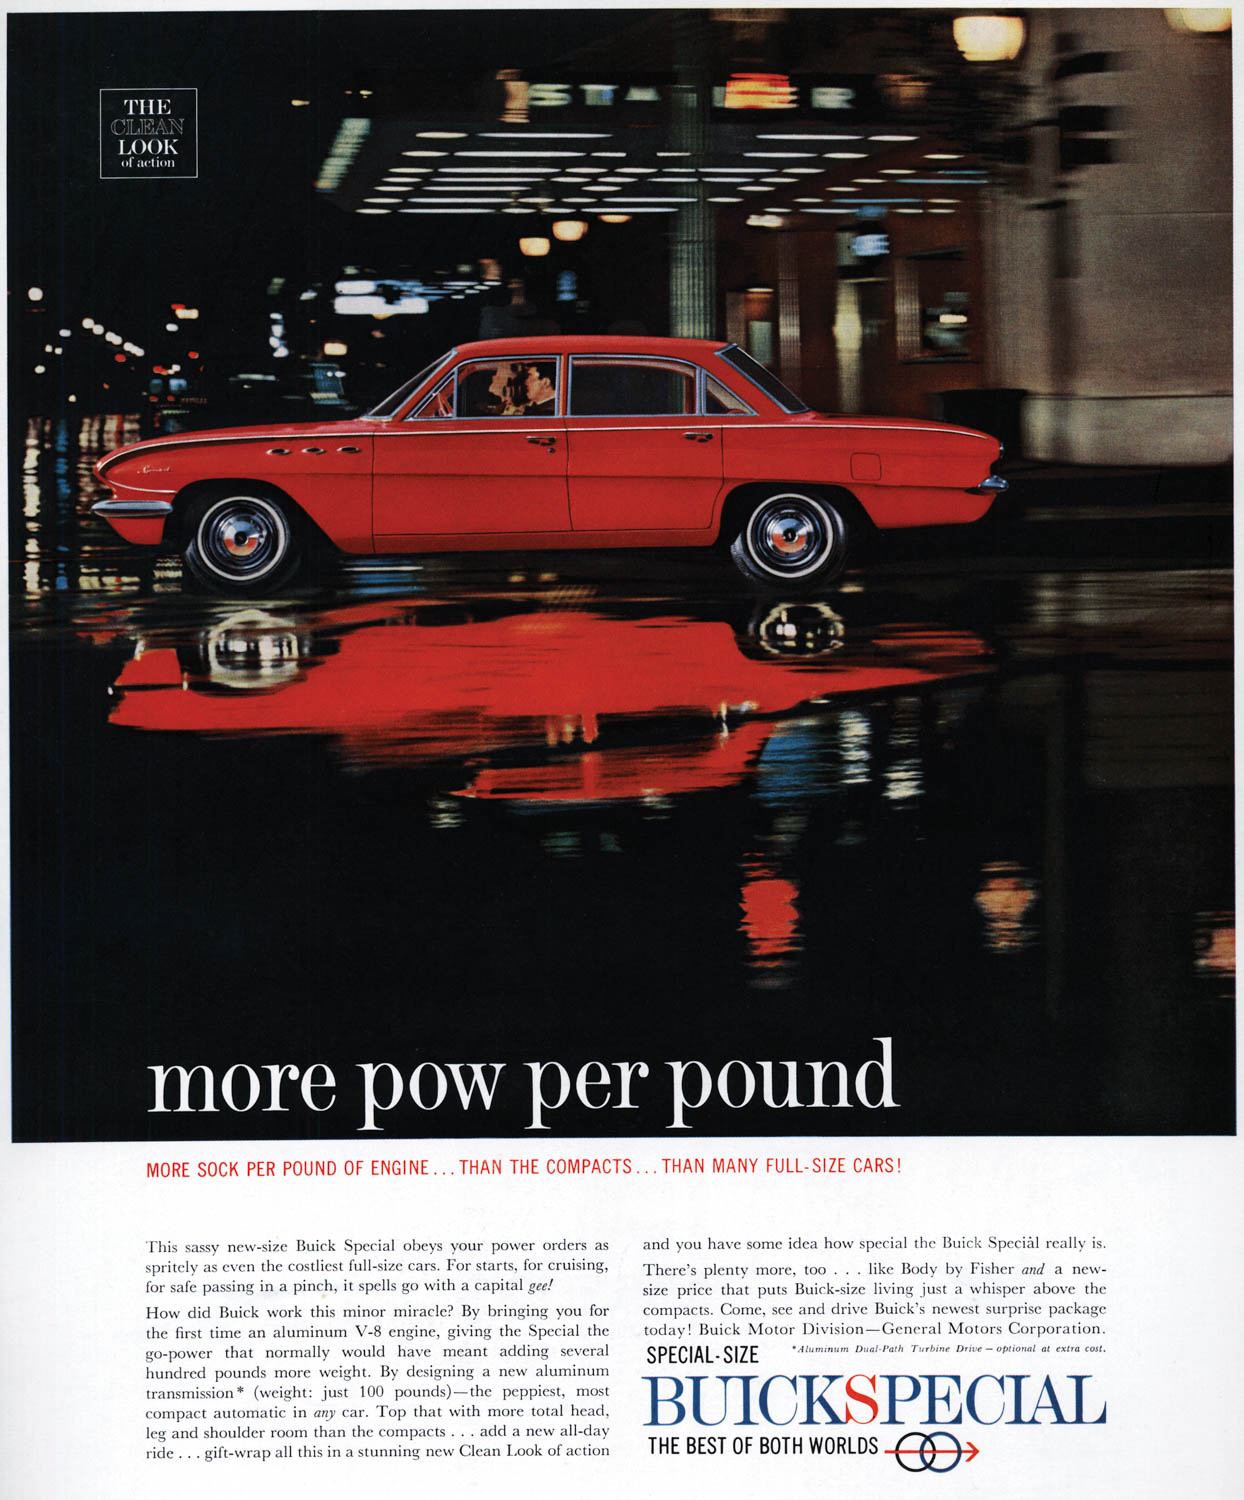 "The revolutionary aluminum V-8 allowed Buick to claim ""more pow per pound"" in this ad for its 1961 Buick Special sedan."